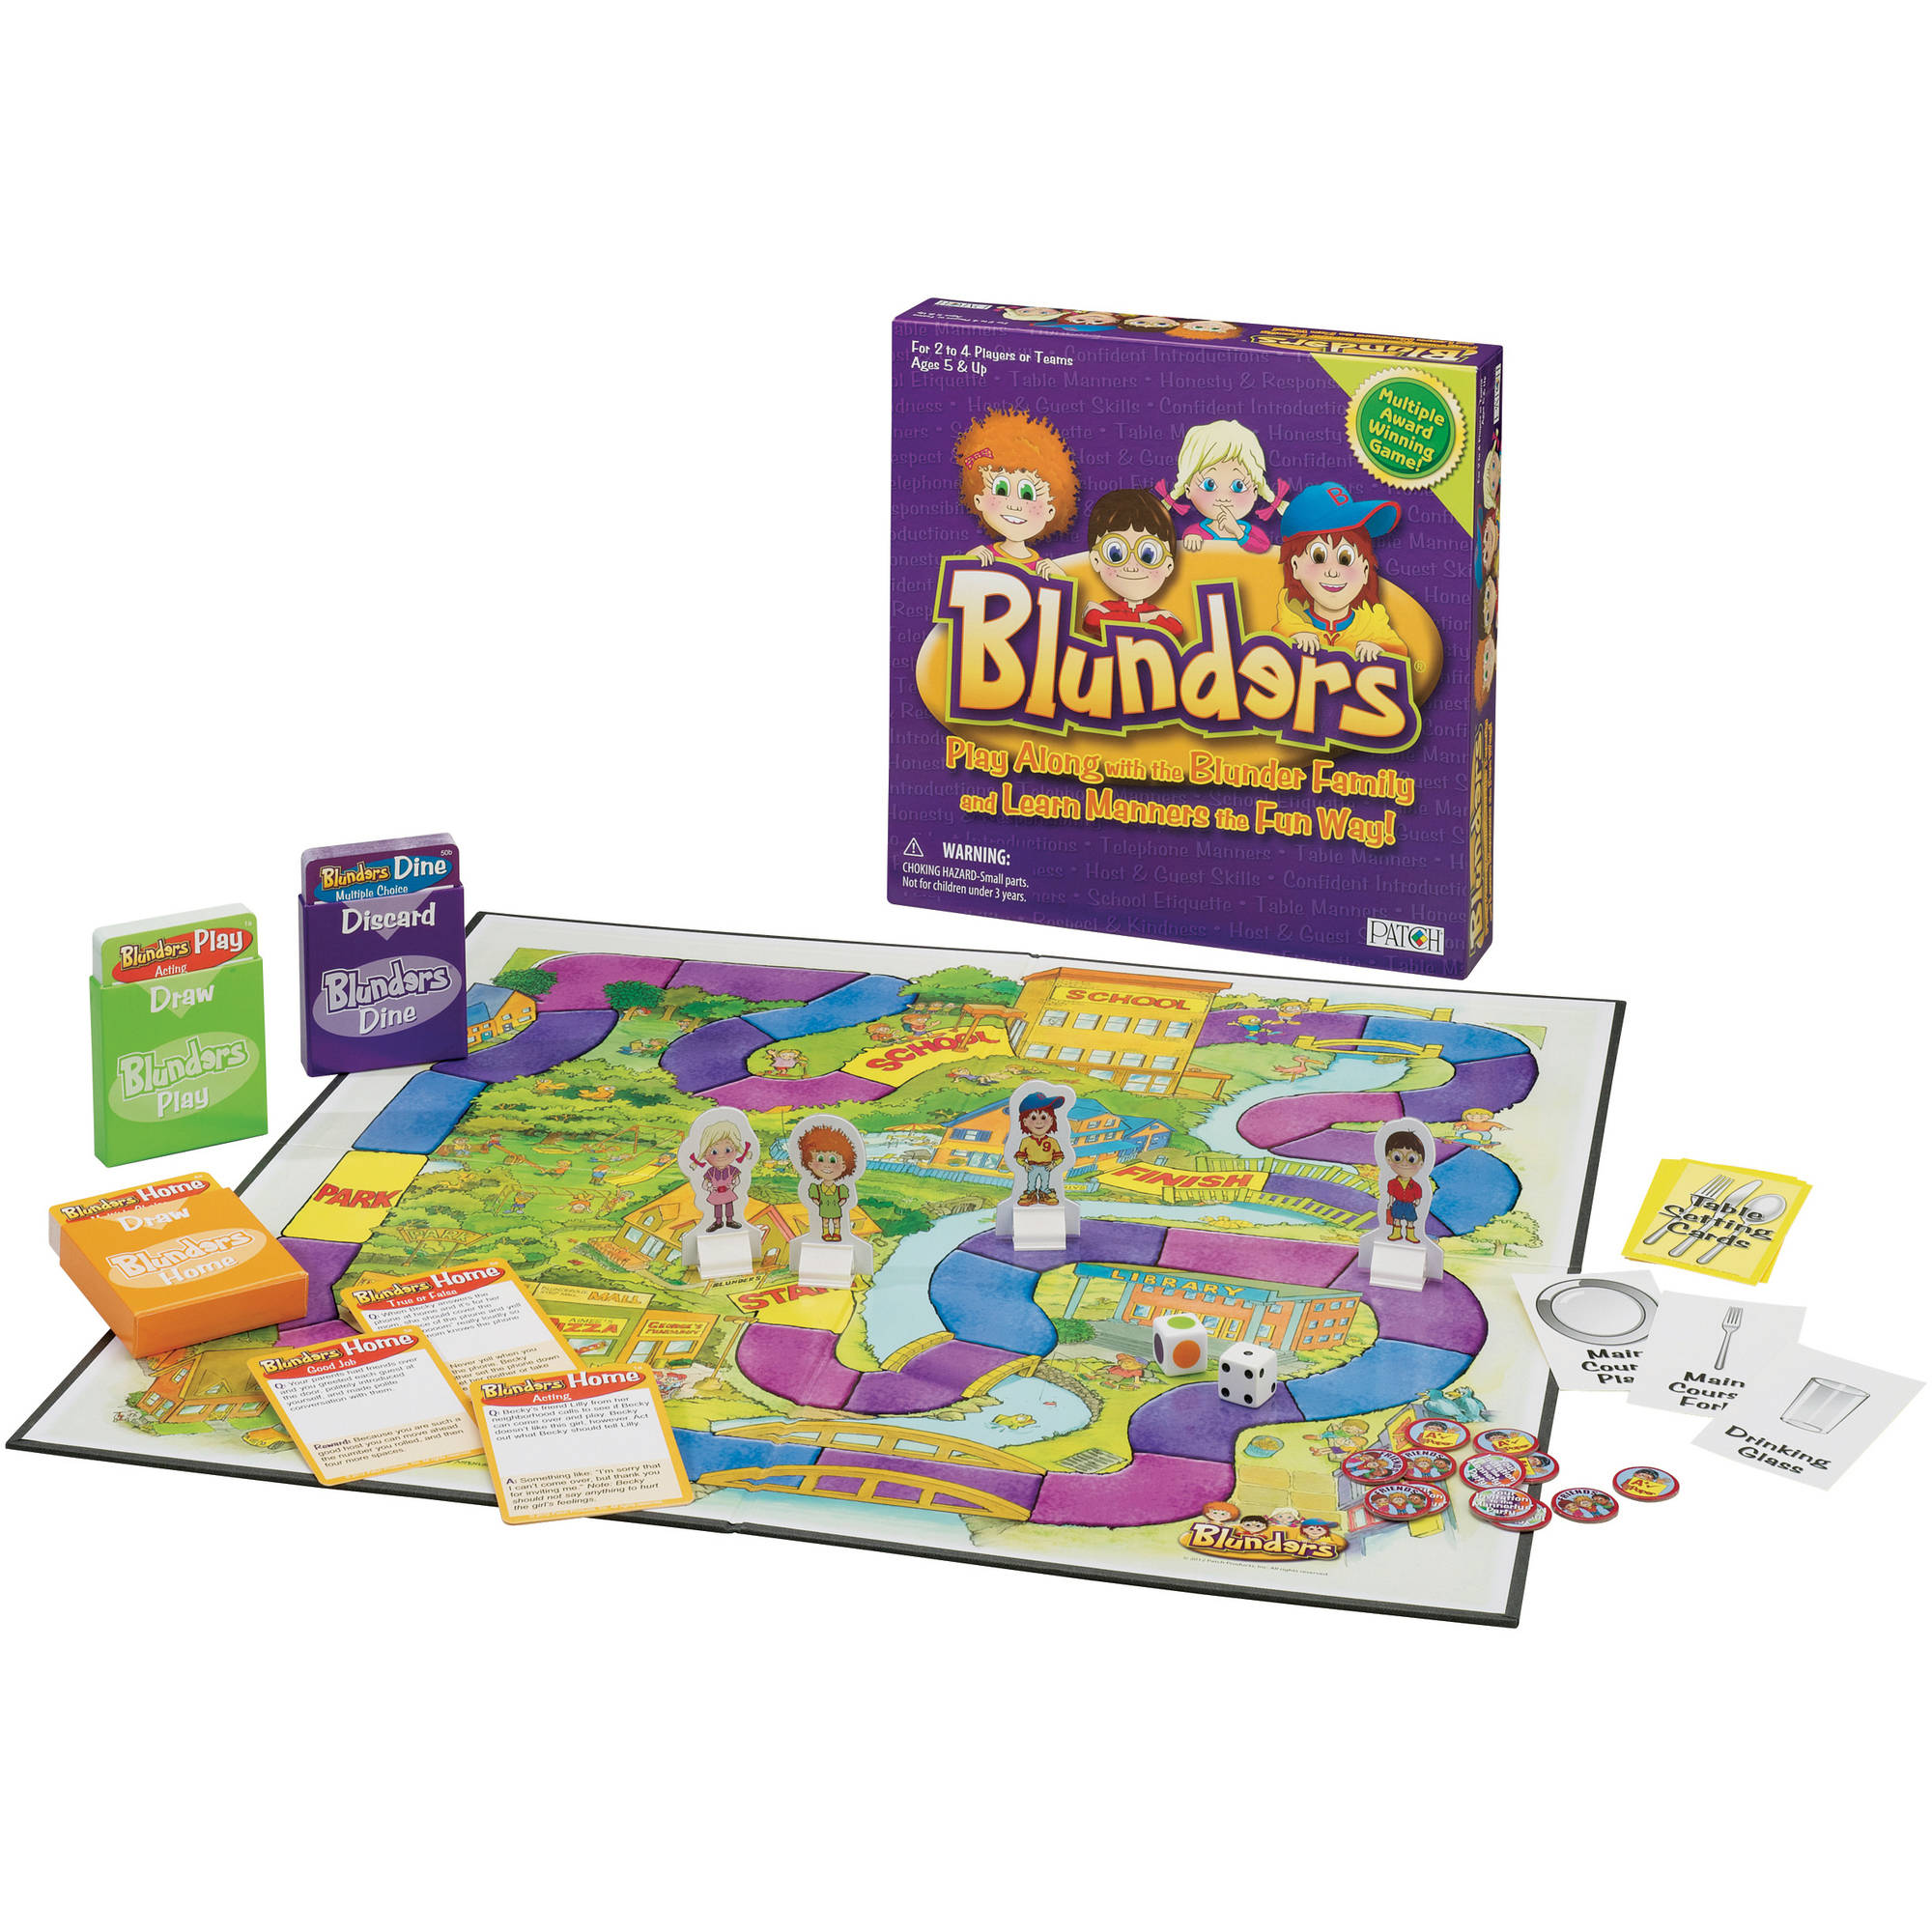 PATCH Blunders Board Game